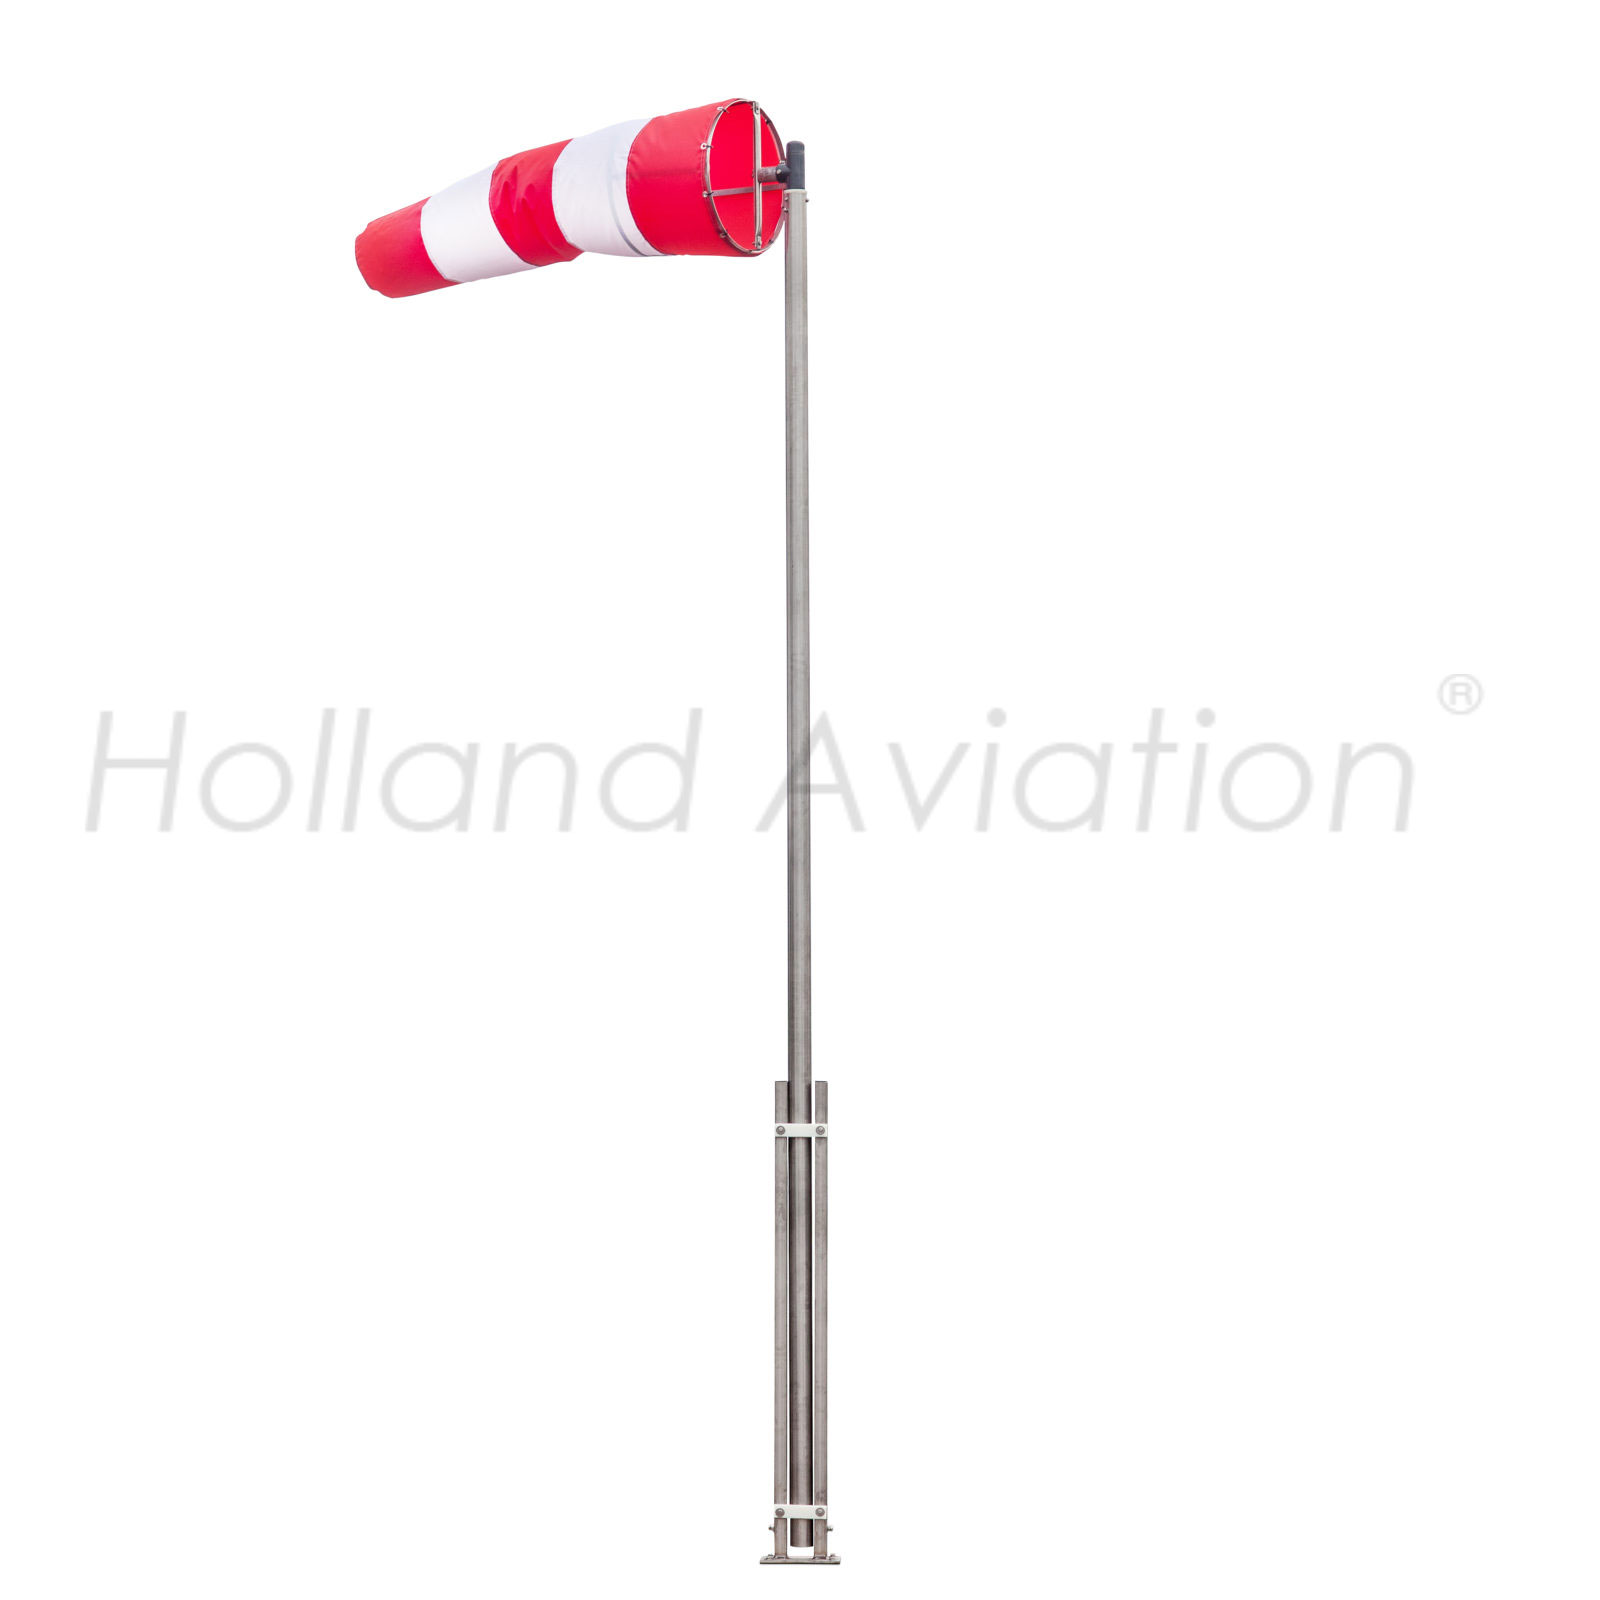 HA-120 RG Windsock assembly unlighted - Holland Aviation